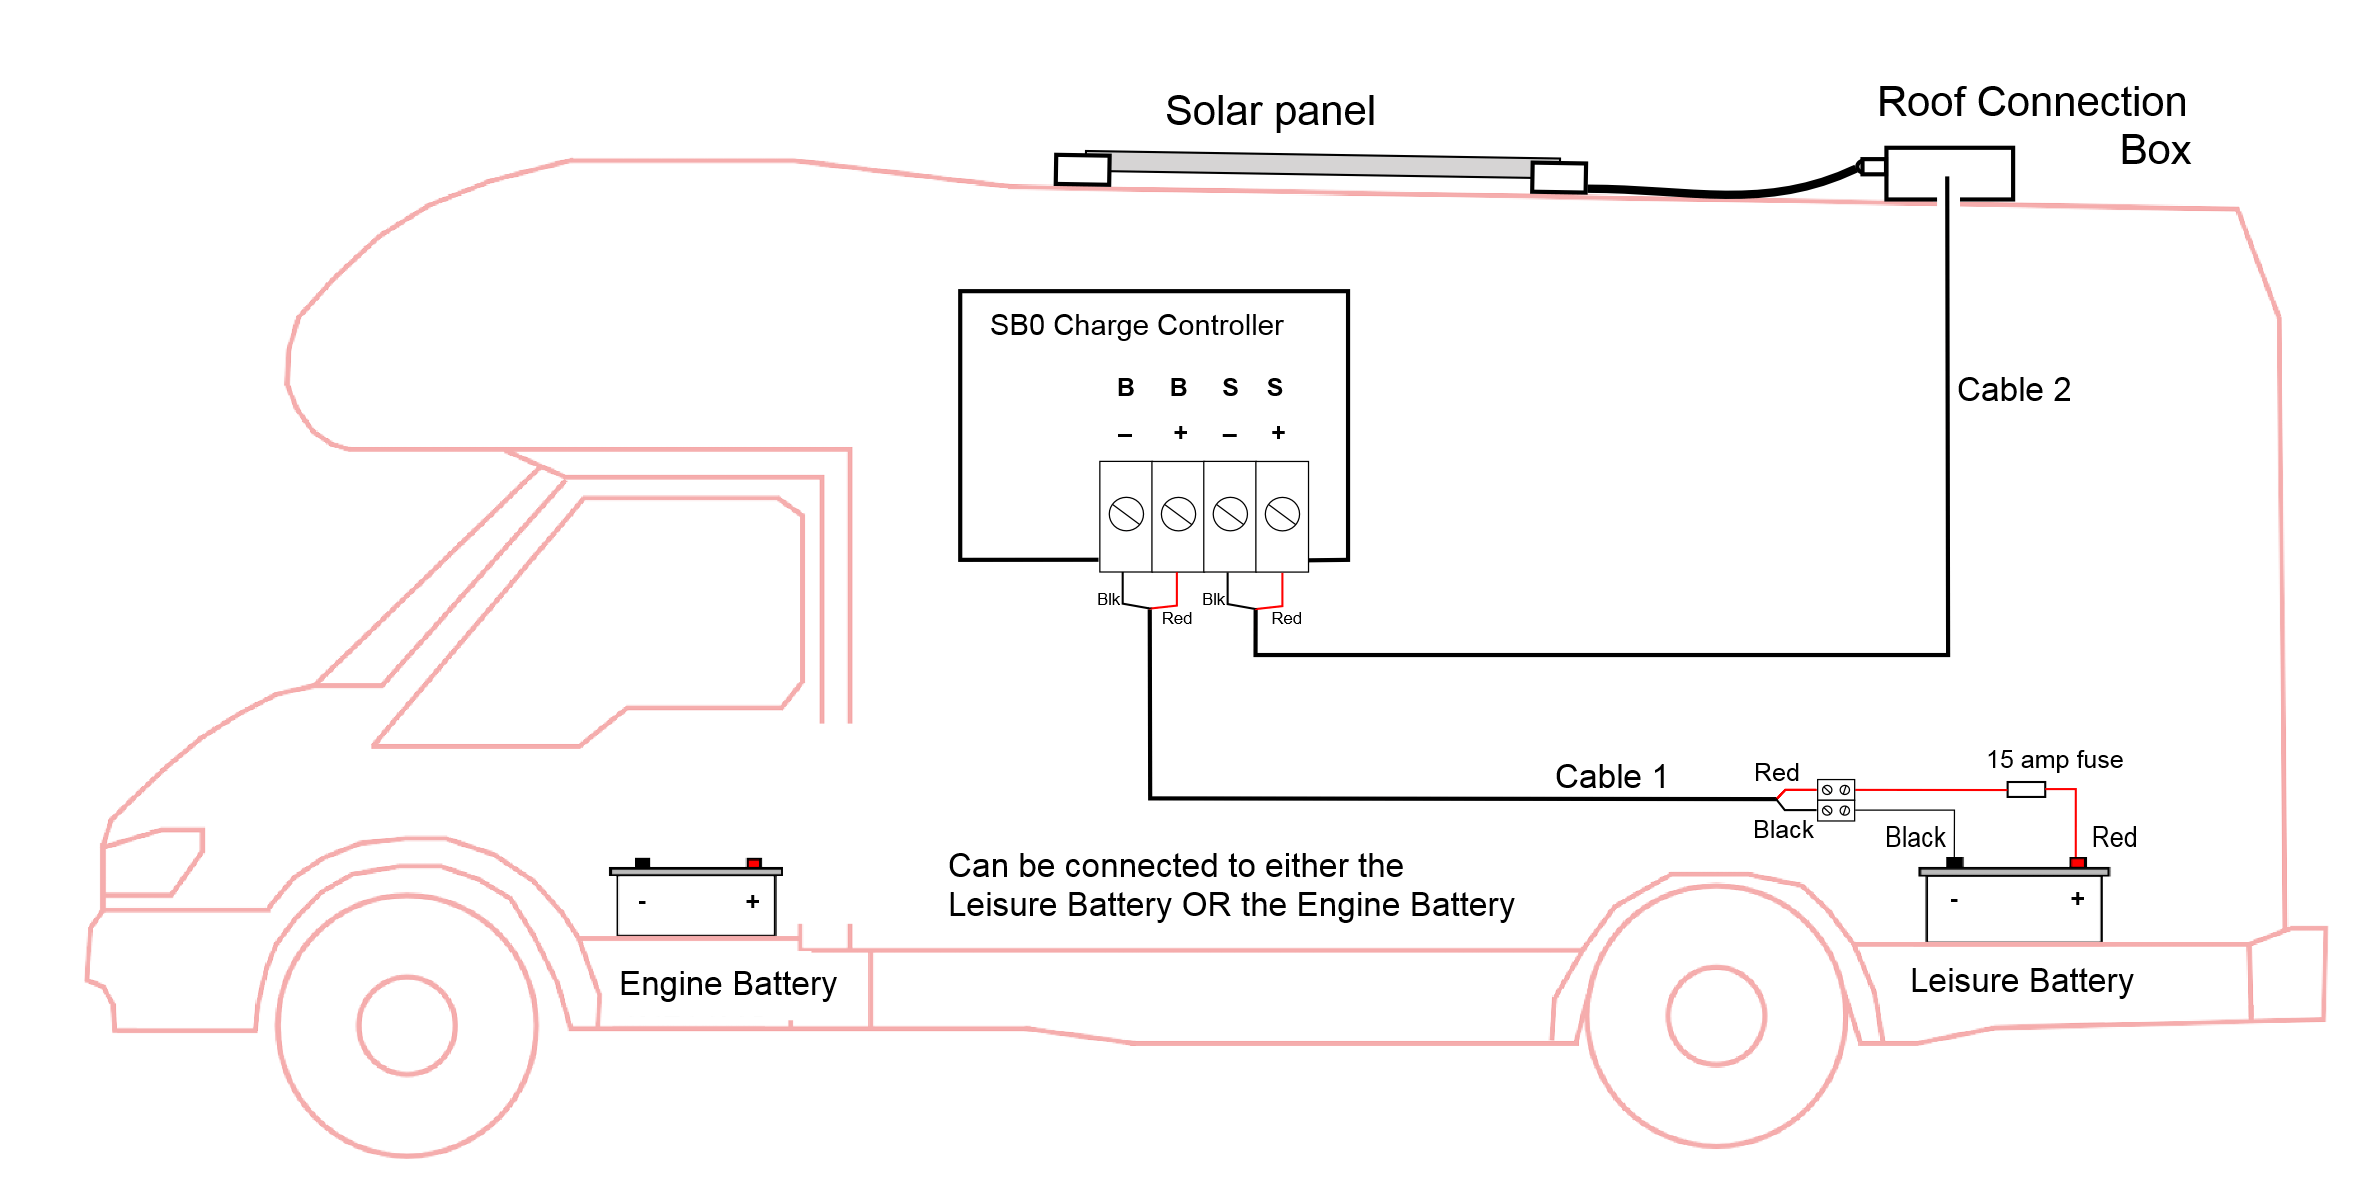 Wiring for Kit 80 UNO solar panel system choose correctly for your motorhome, boat or leisure battery wiring diagram at creativeand.co